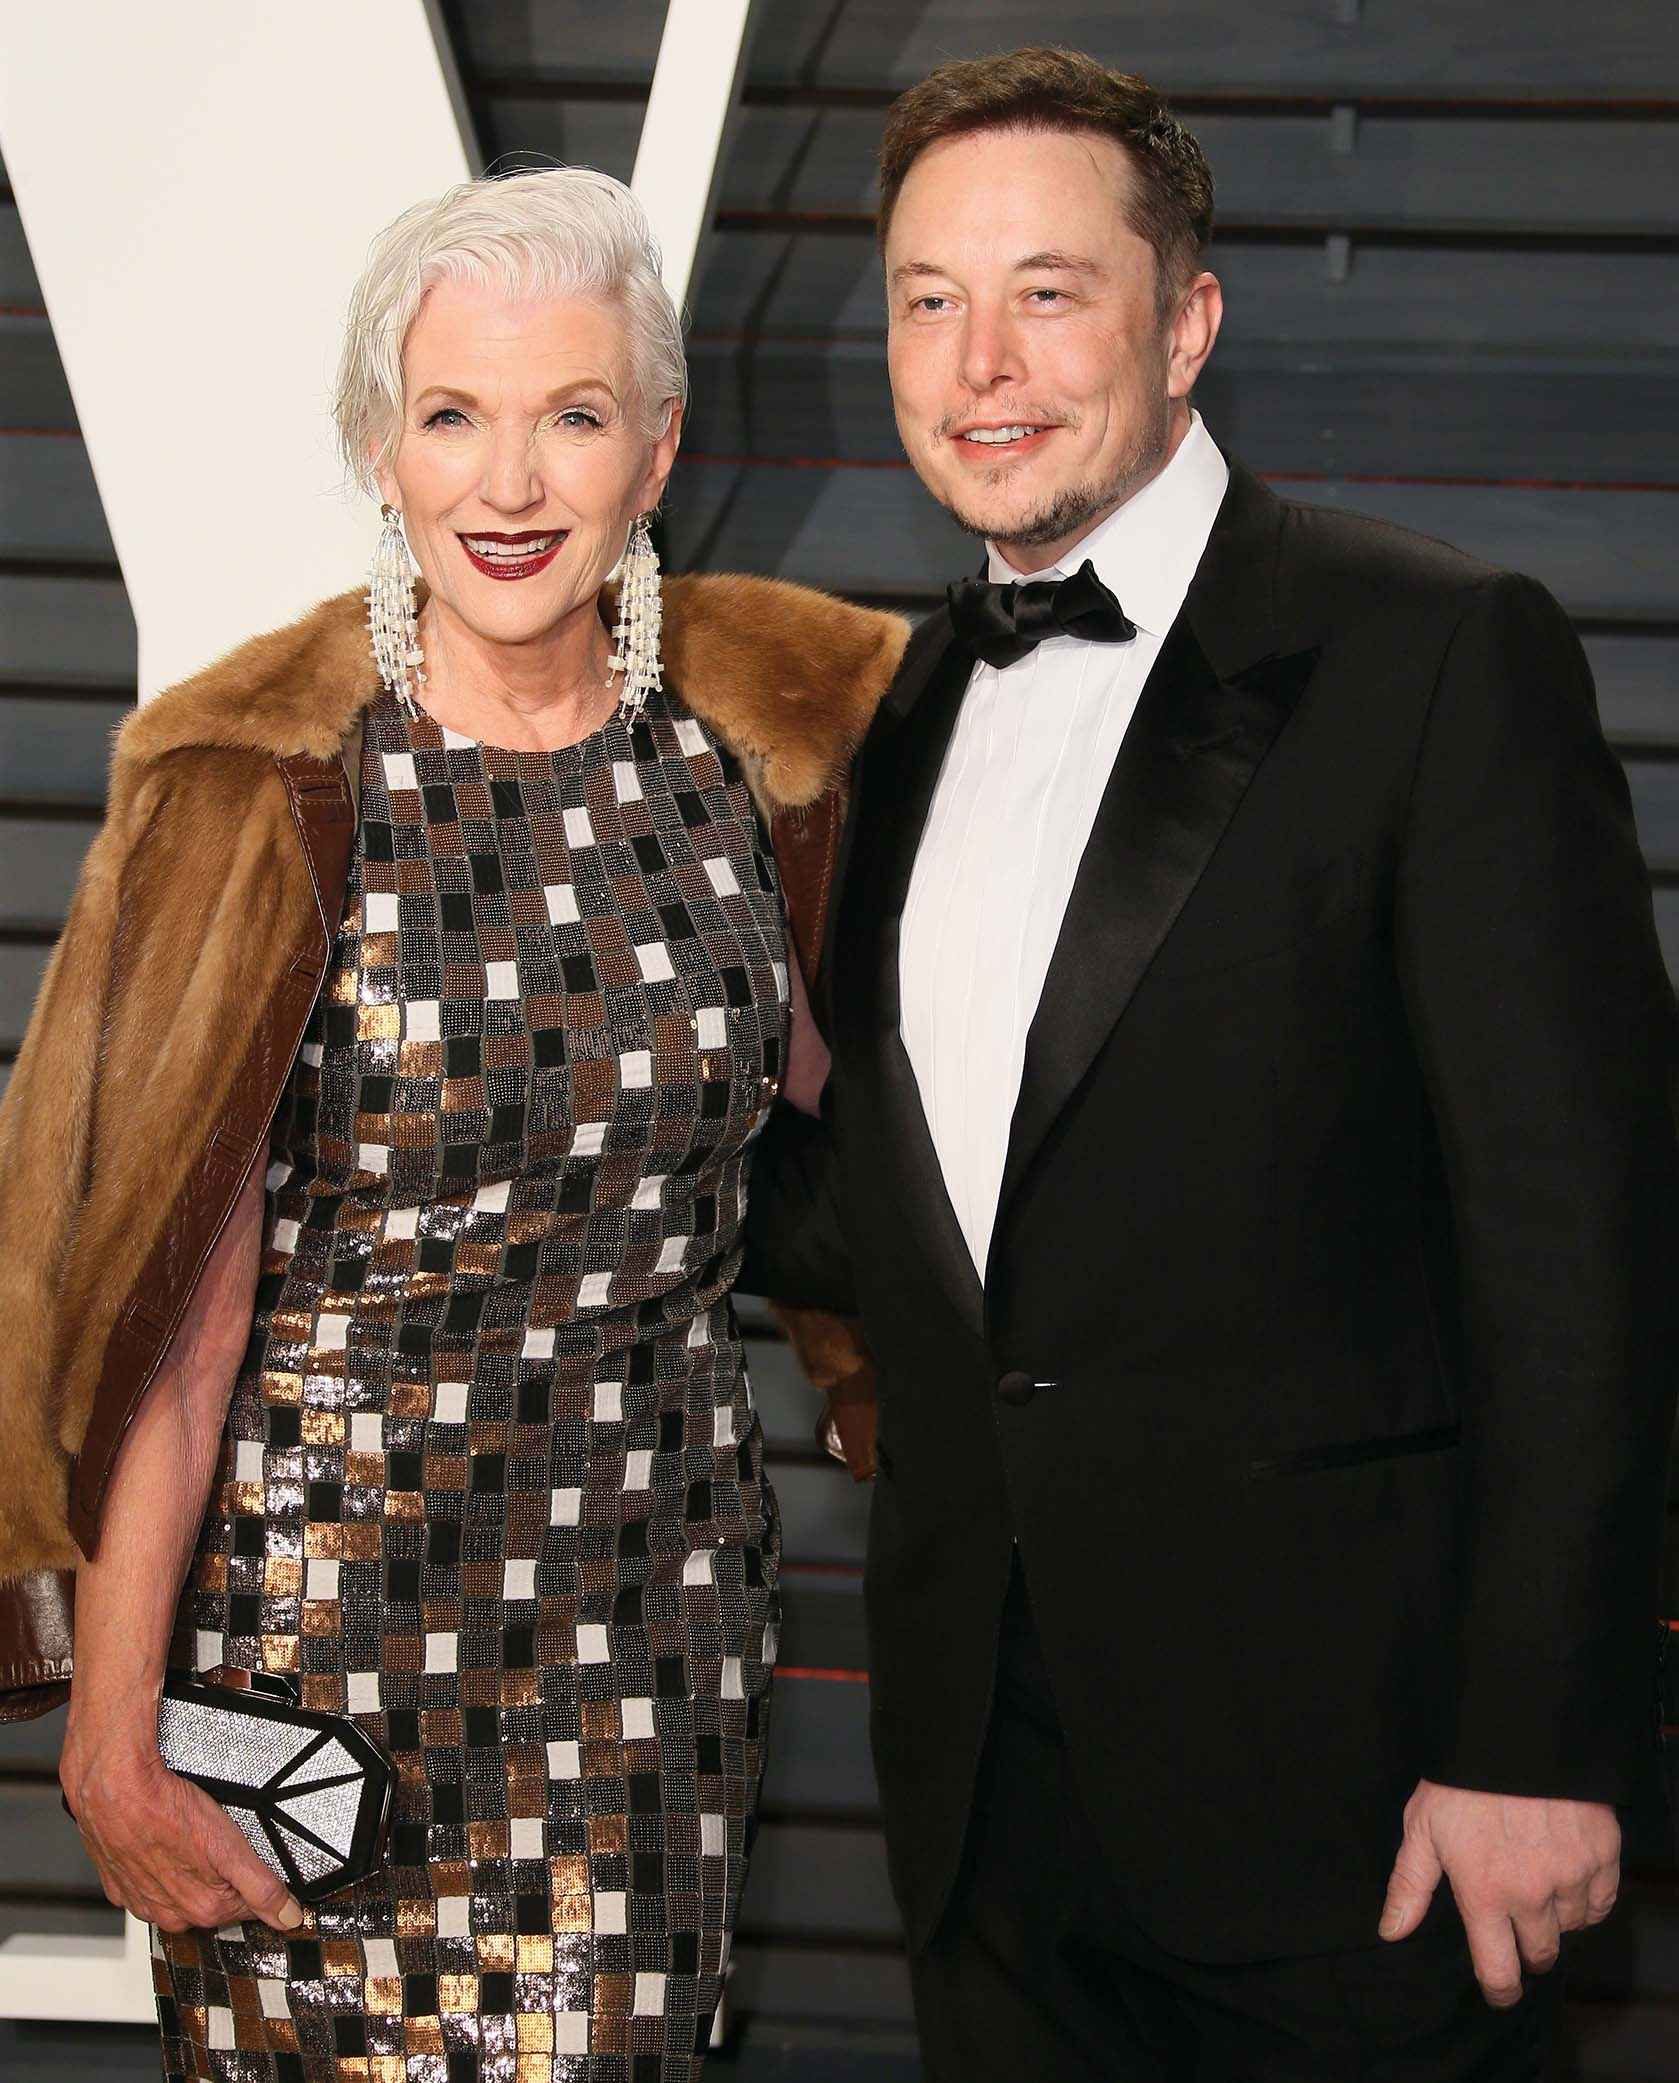 BEVERLY HILLS, CA - FEBRUARY 26: Maye Musk and Elon Musk attend the 2017 Vanity Fair Oscar Party hosted by Graydon Carter at Wallis Annenberg Center for the Performing Arts on February 26, 2017 in Beverly Hills, California. (Photo by JB Lacroix/WireImage)